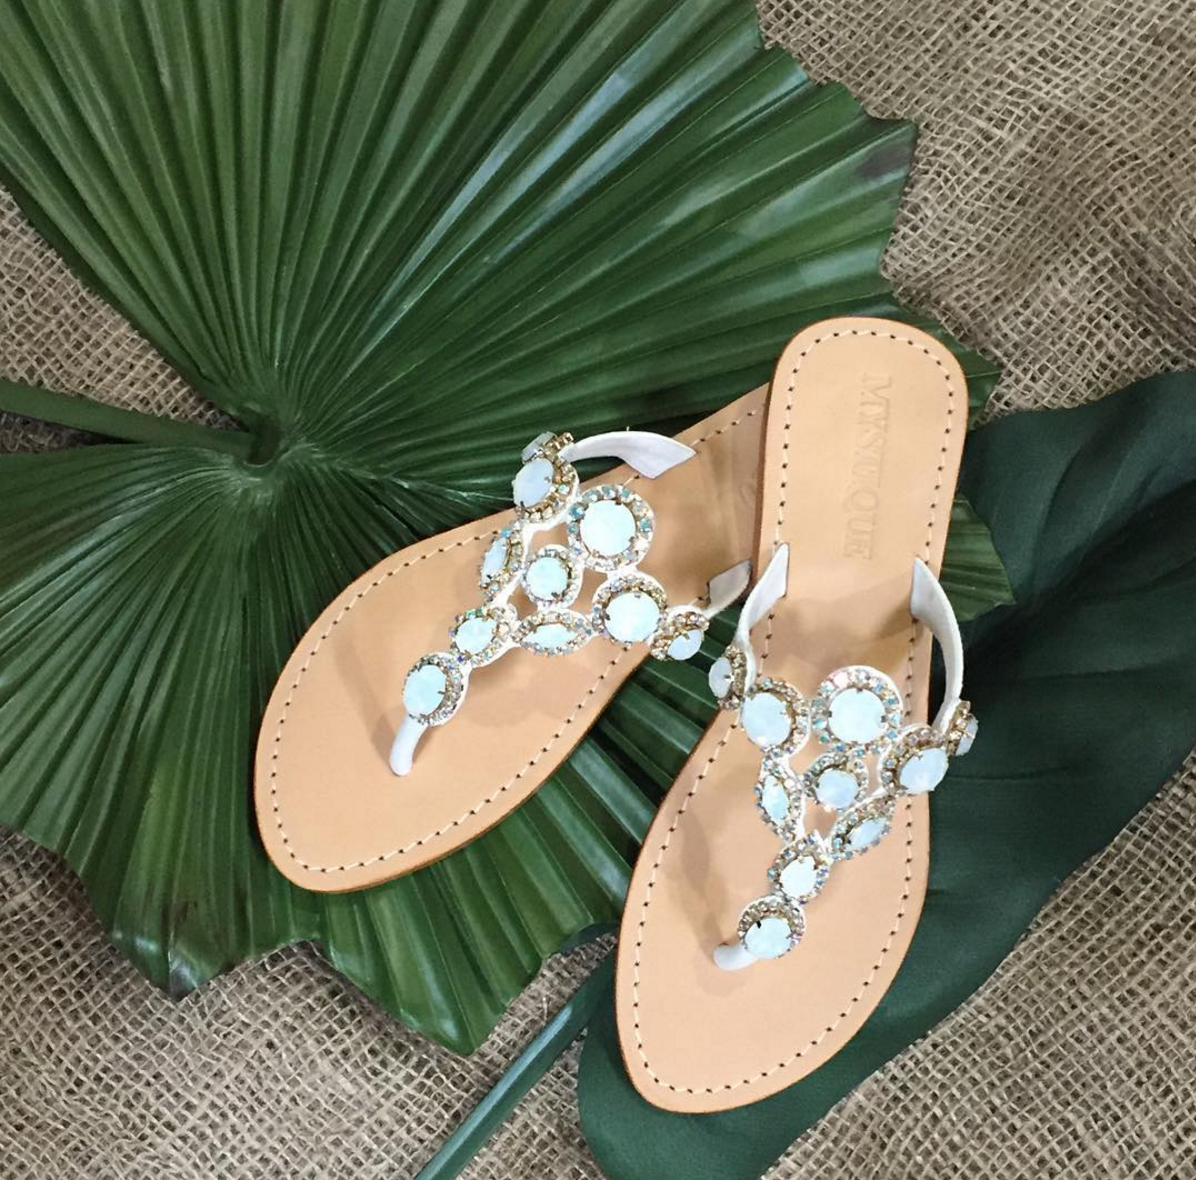 White leather sandals for you next vacation! Don't miss out on these for Summer 2016!